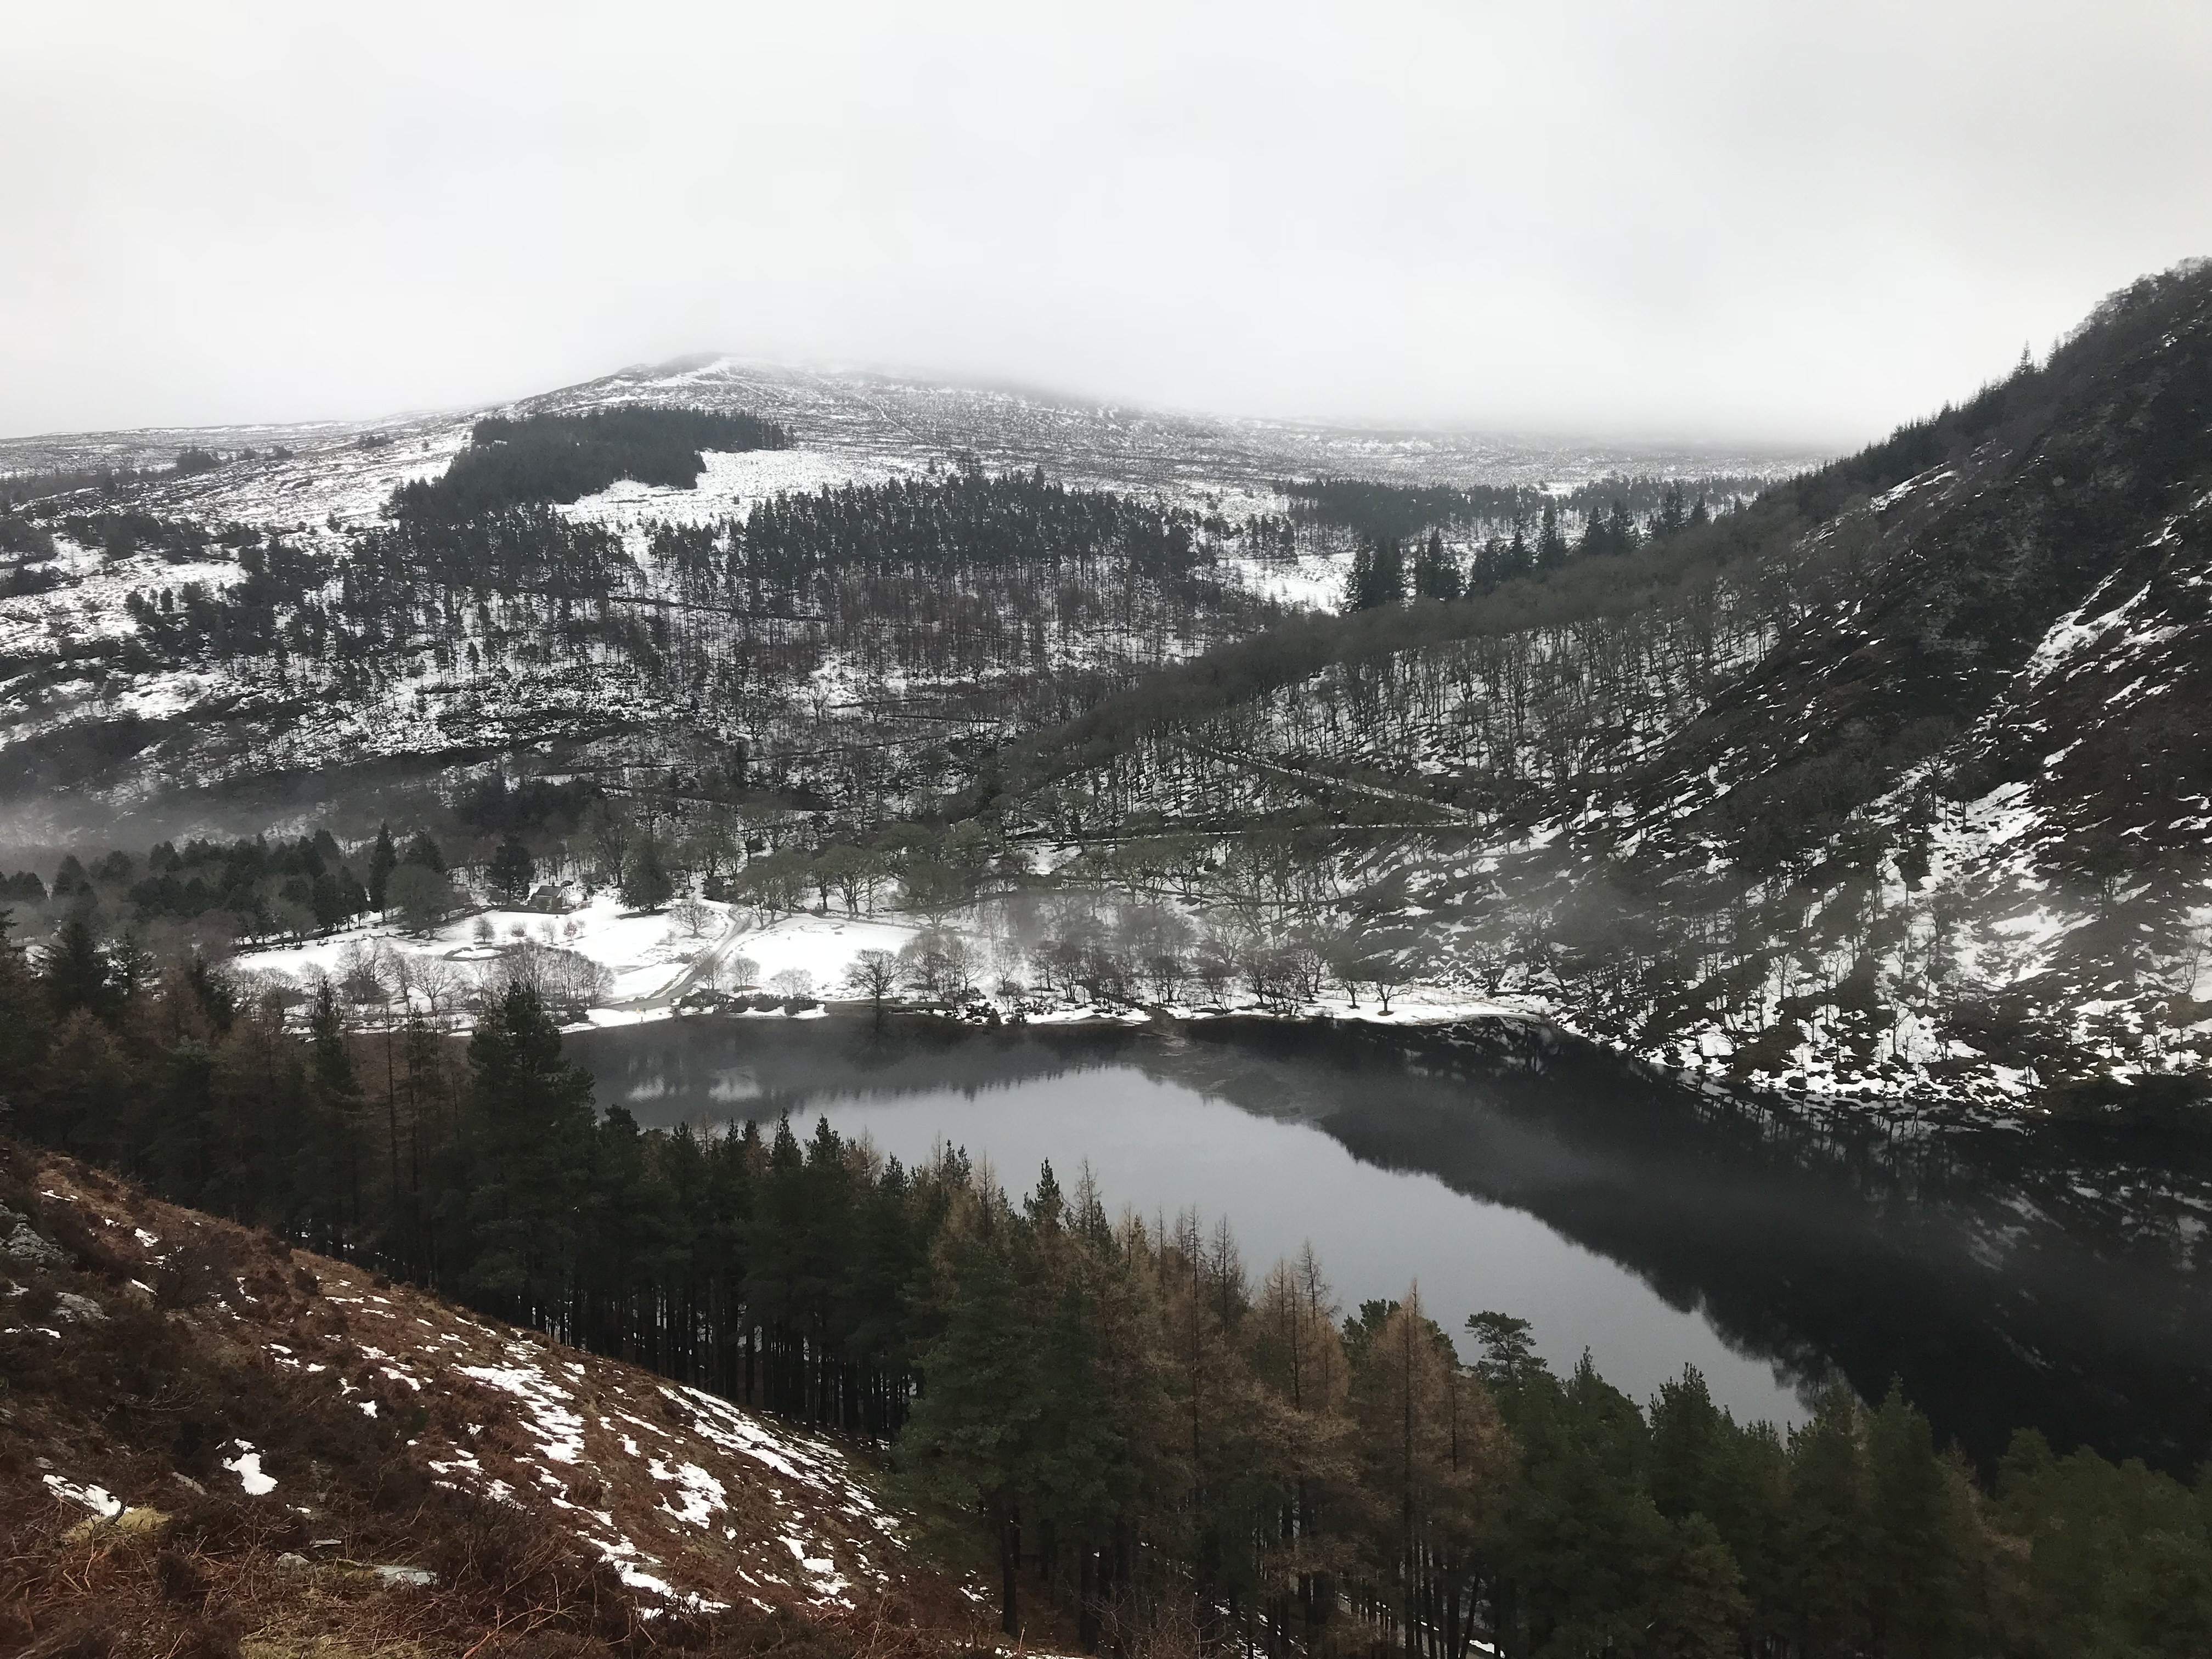 CAPAStudyAbroad_Dublin_Spring2018_From Brandon Mooney - Upper Lake from One of the Valley Walls in Glendalough.jpeg